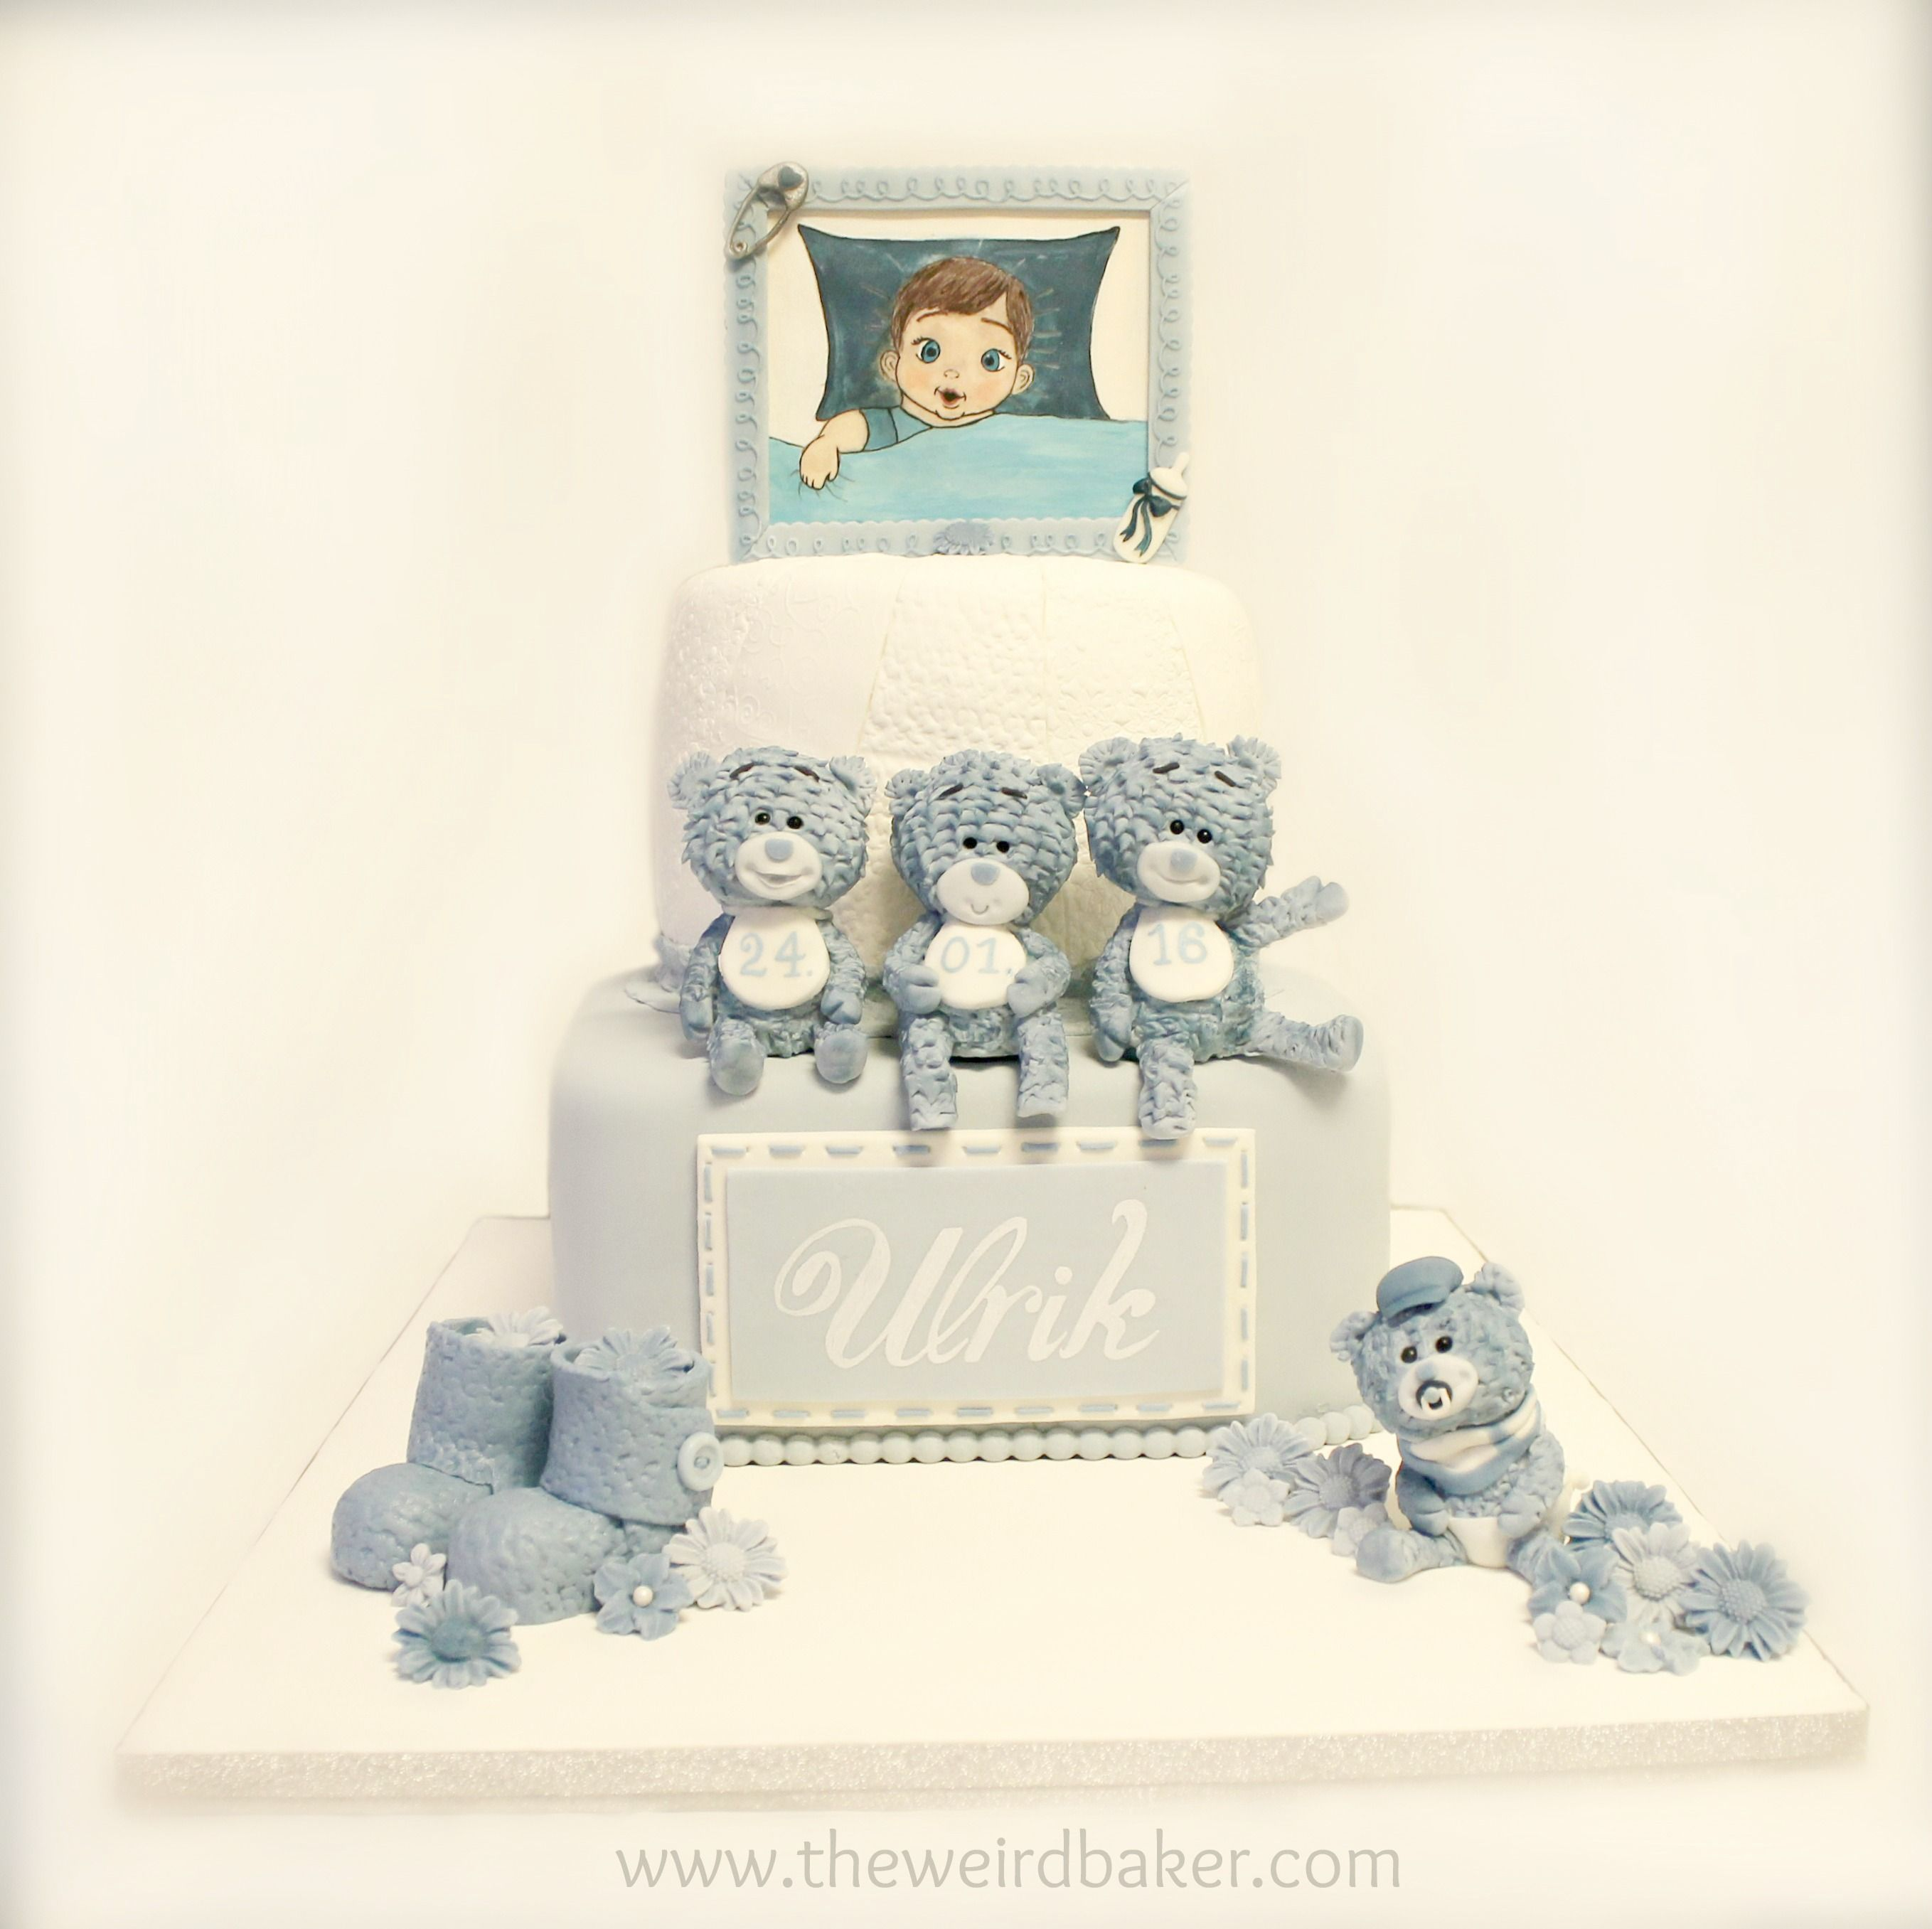 Christening cake for a boy with fondant teddybears and edible handpainted baby picture